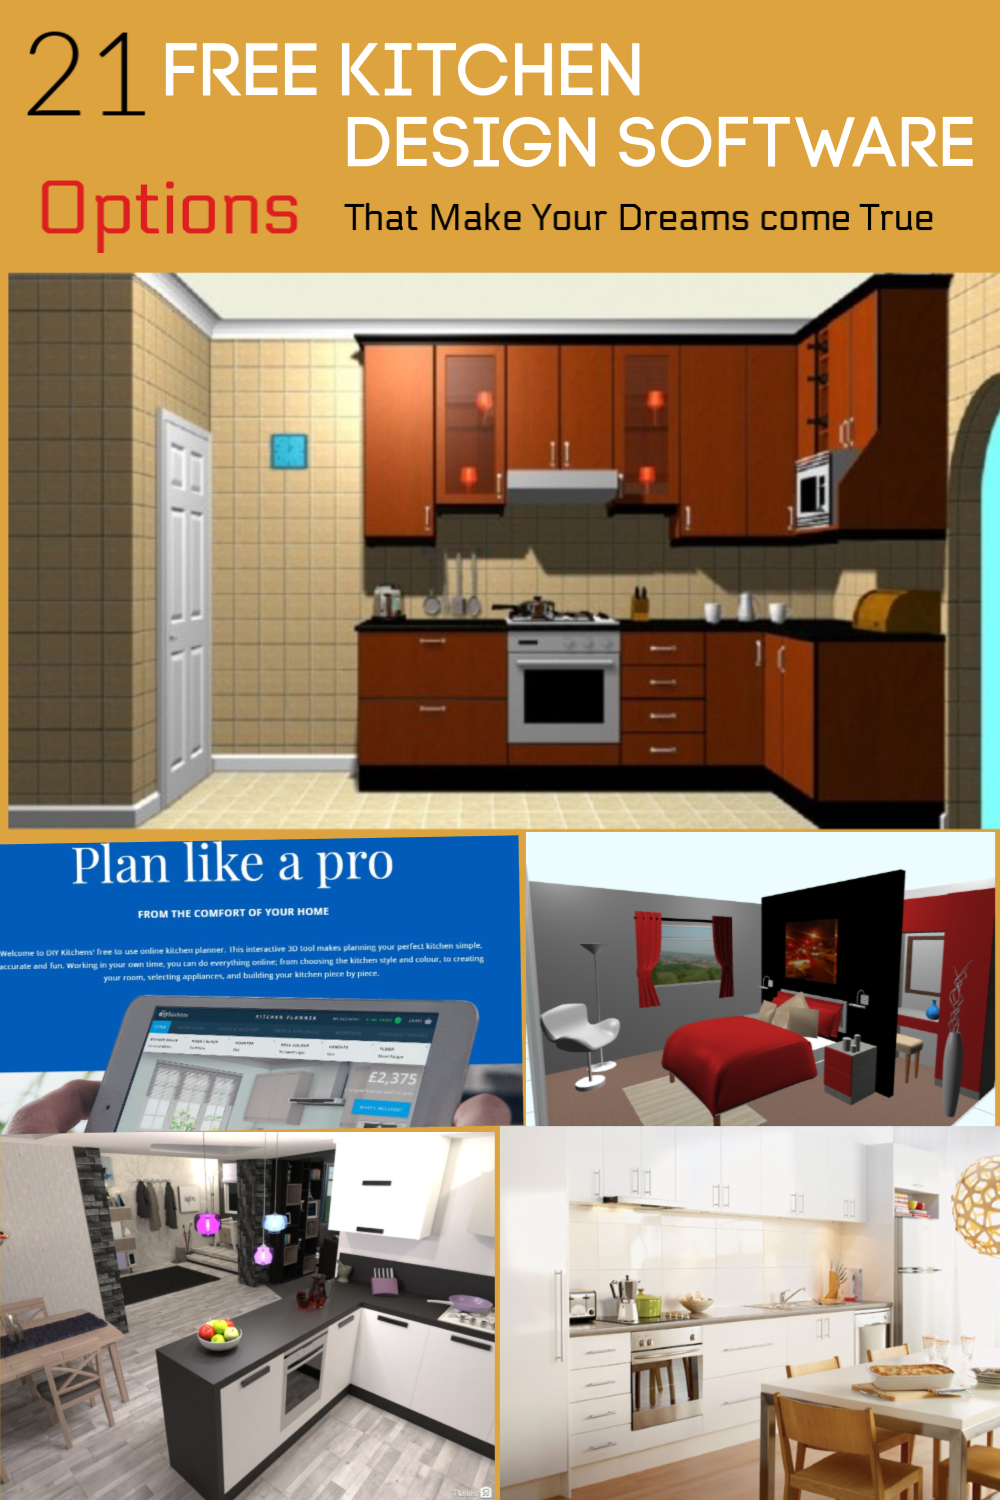 21 Free Kitchen Design Software To Create An Ideal Kitchen Home And Gardening Ideas Free Kitchen Design Kitchen Design Software Kitchen Design Software Free